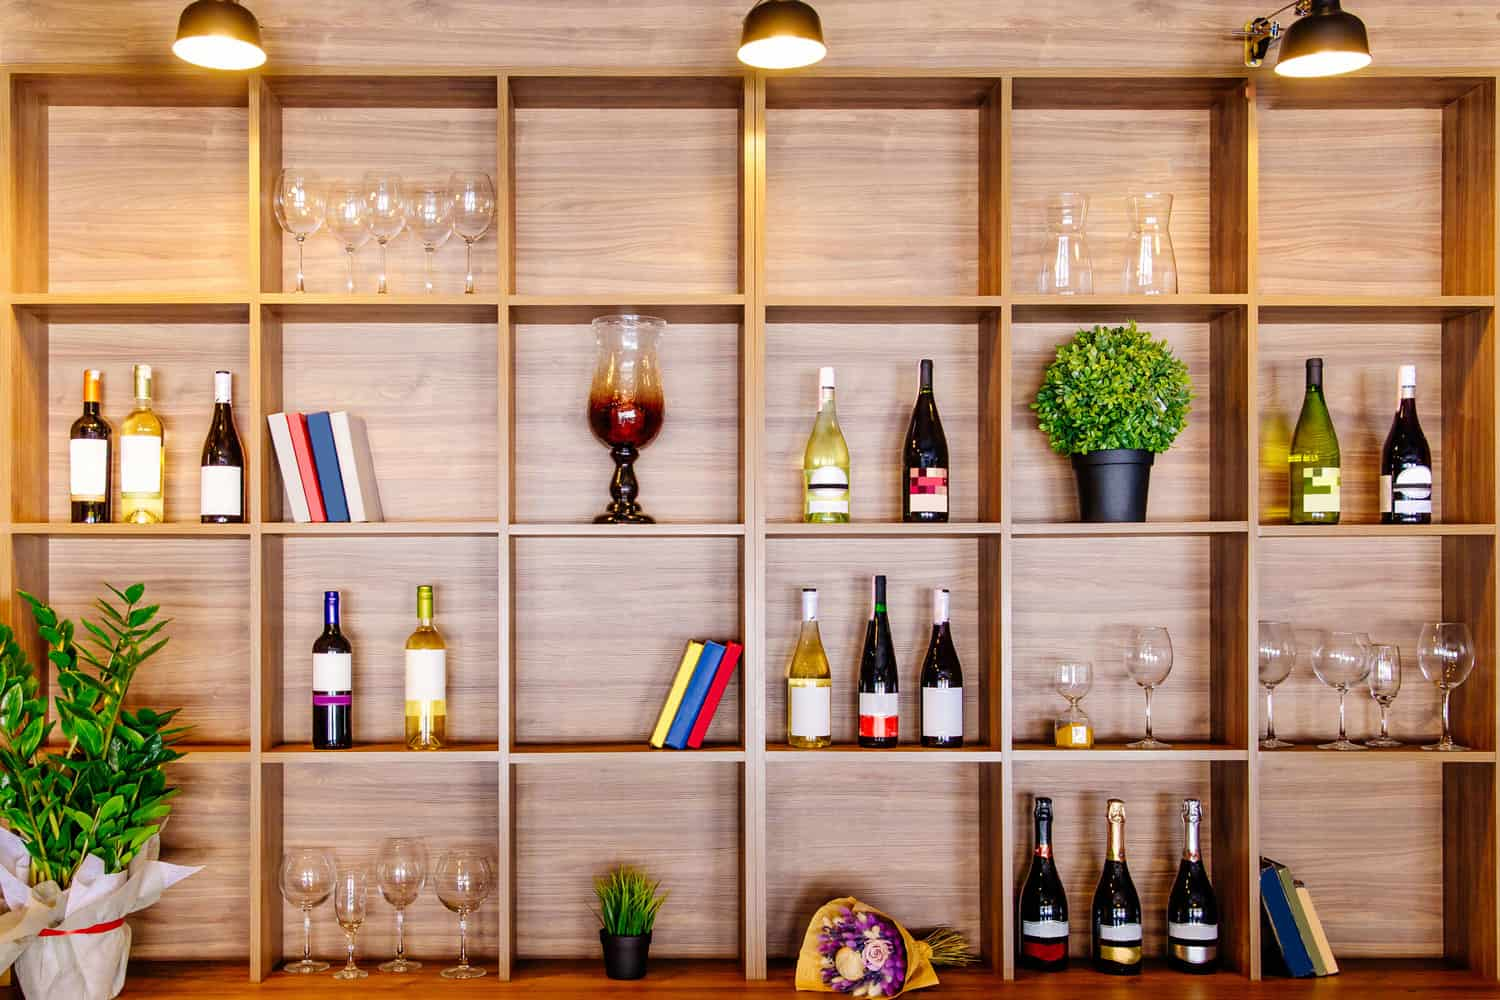 Bottles of white and red wine on a wooden shelf with books in private winery cabinet room